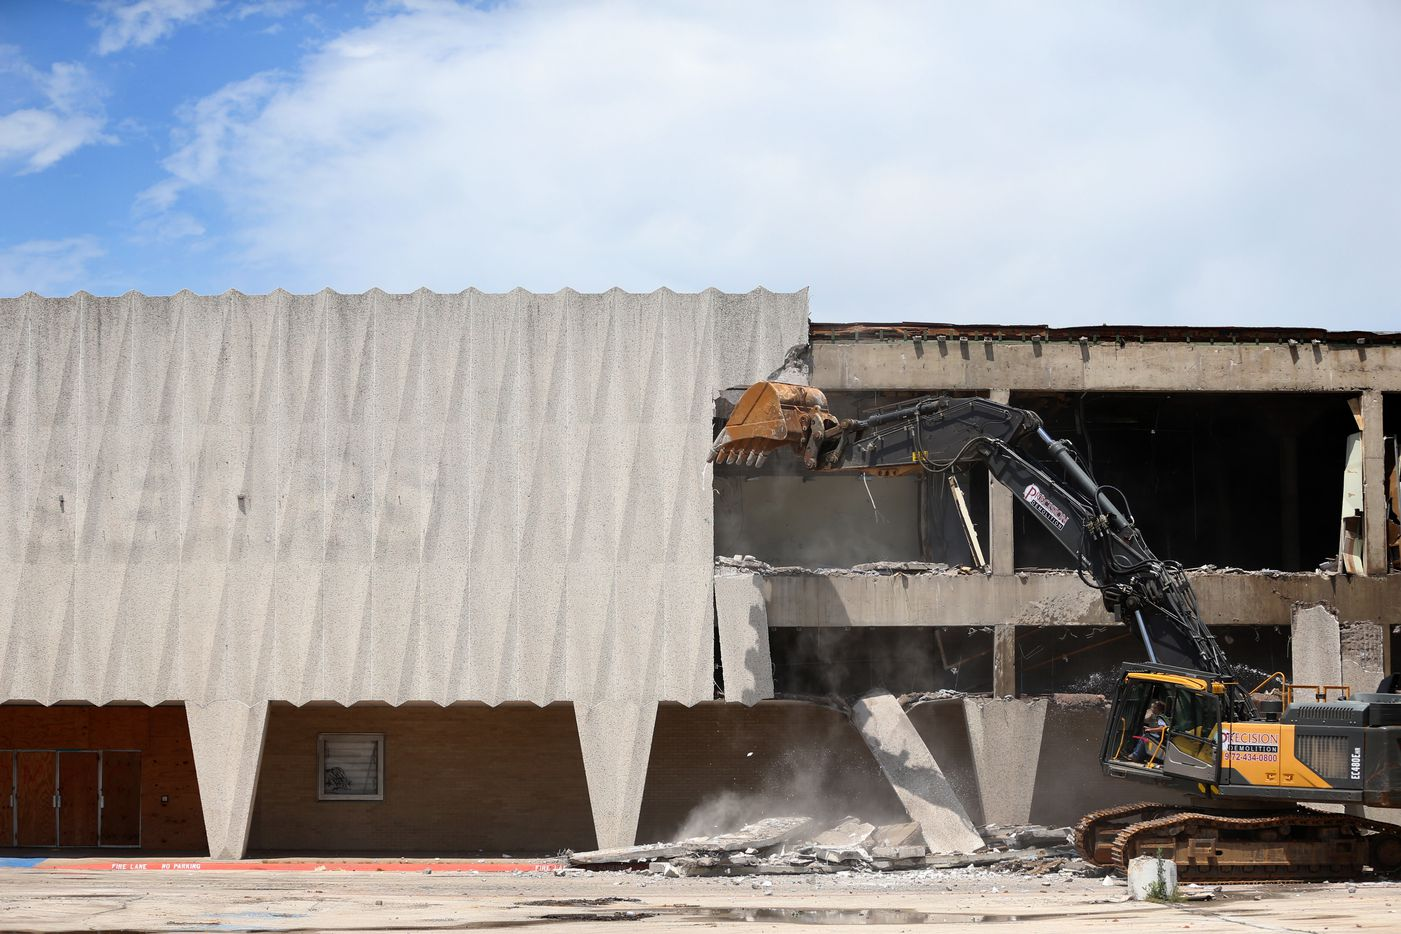 Construction crews demolish the old Sears store at Valley View Mall in Dallas.